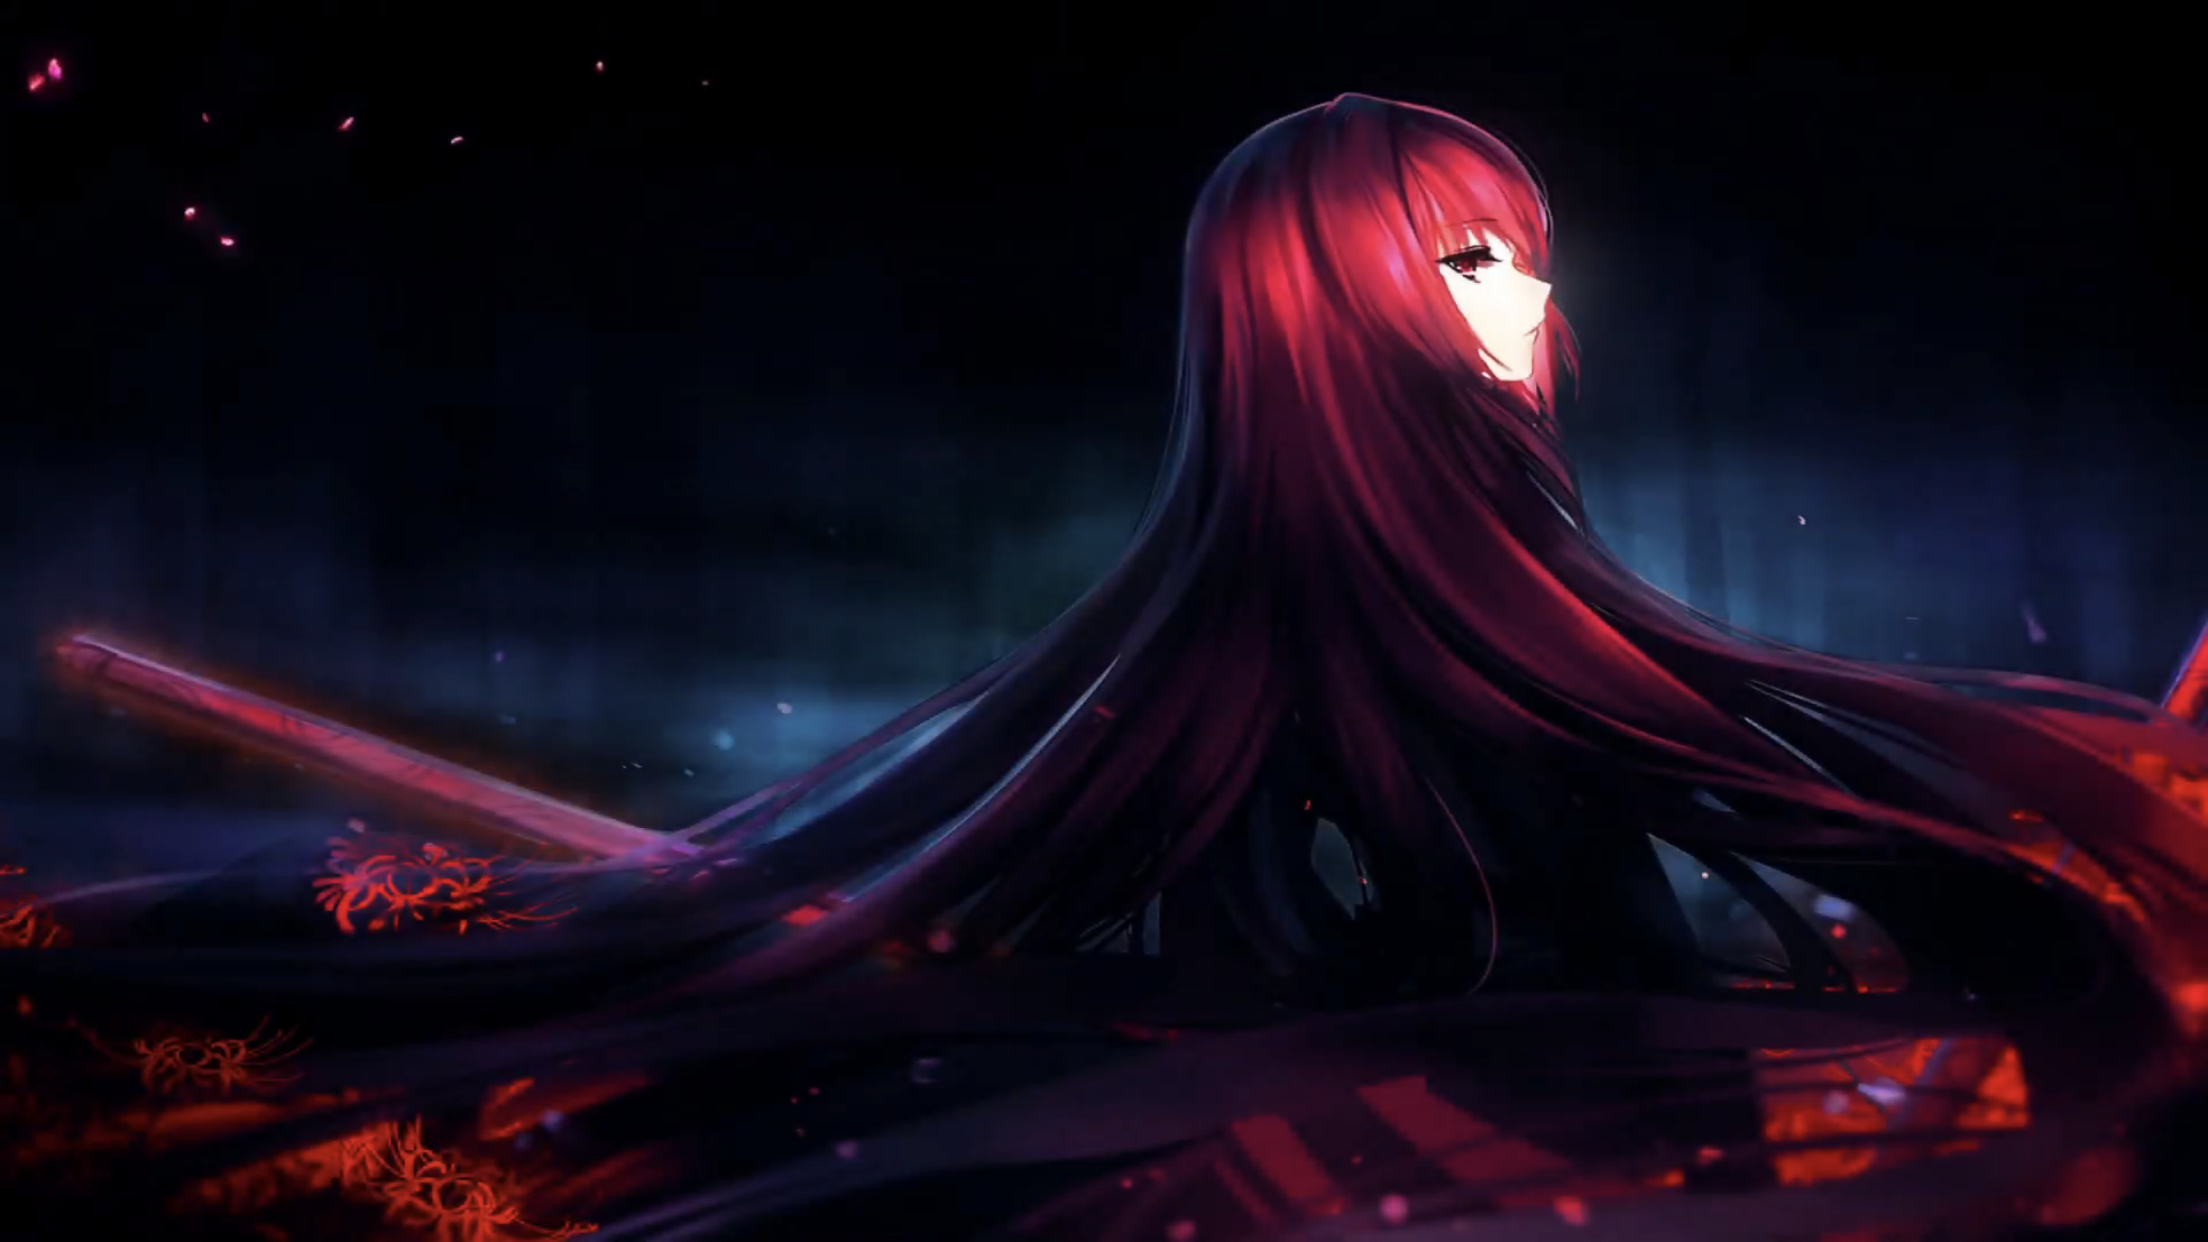 Pin by 3njeru on アニメ Anime backgrounds wallpapers, Anime